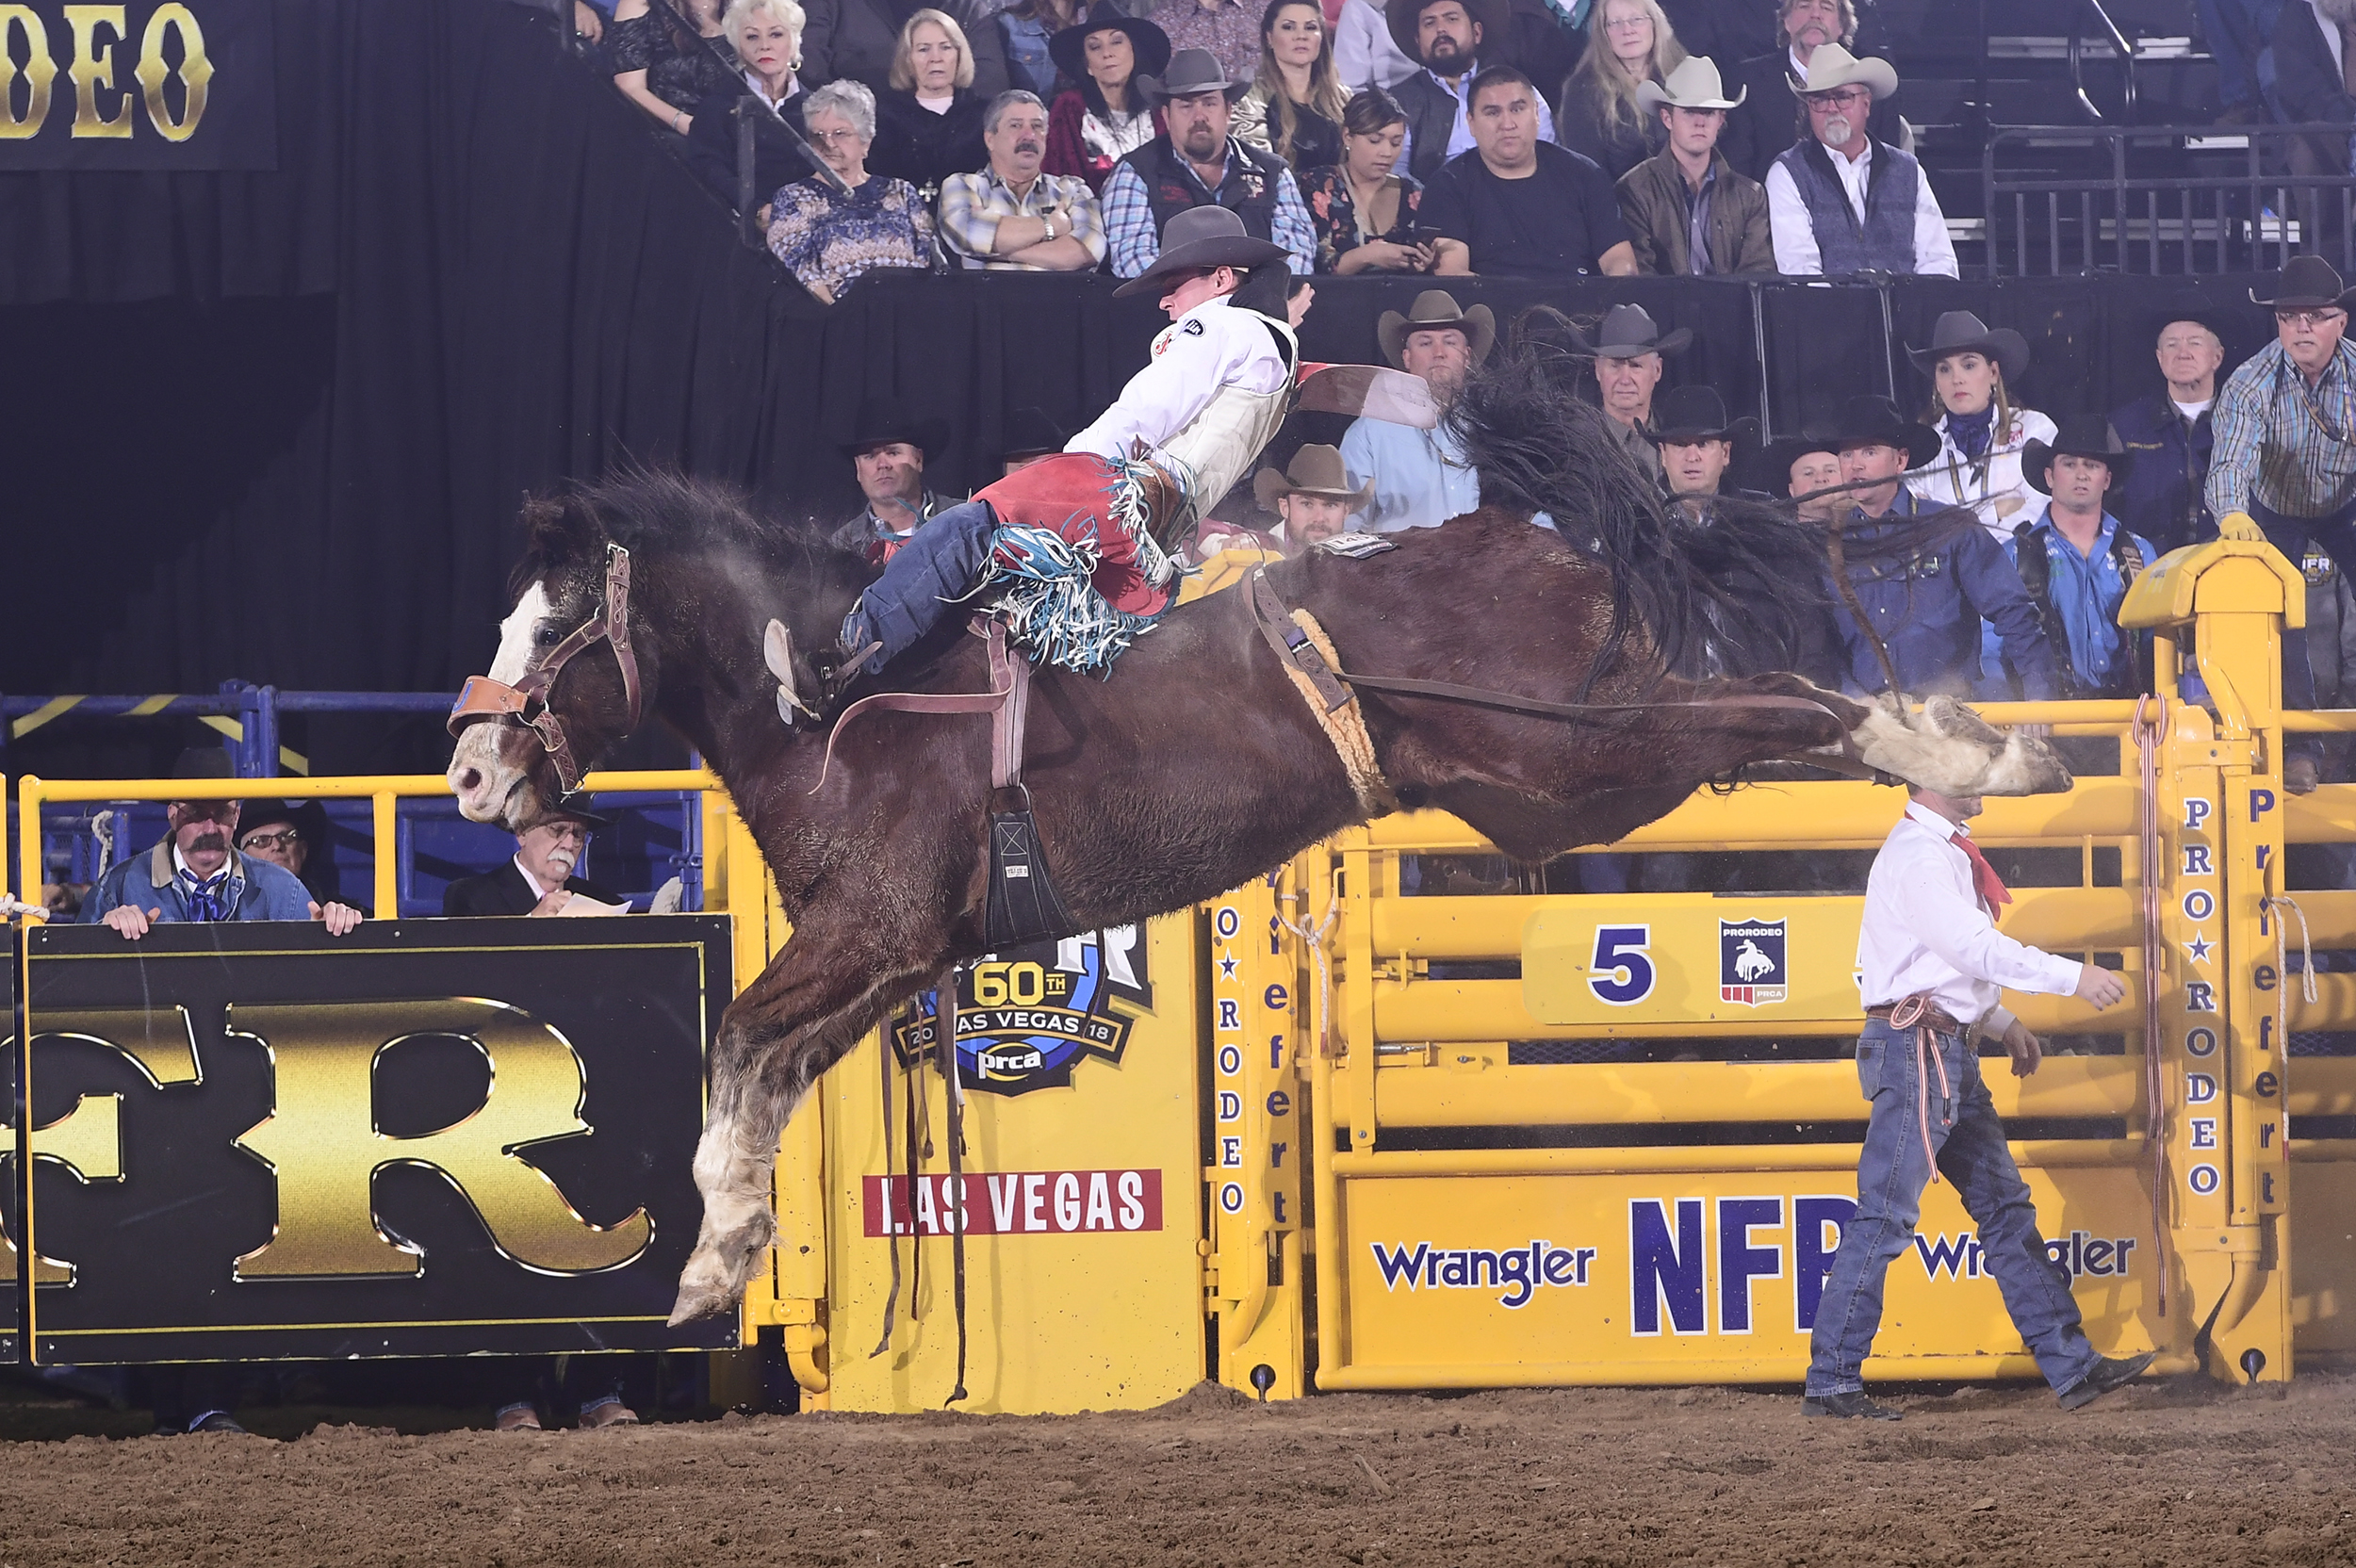 Tim O'Connell went on a tear the final three months and 10 days of the 2019 regular season to earn $100,000 and qualify for the National Finals Rodeo. He will battle for a fourth straight world title at this year's NFR, set for Dec. 5-14. (PHOTO BY JAMES PHIFER)